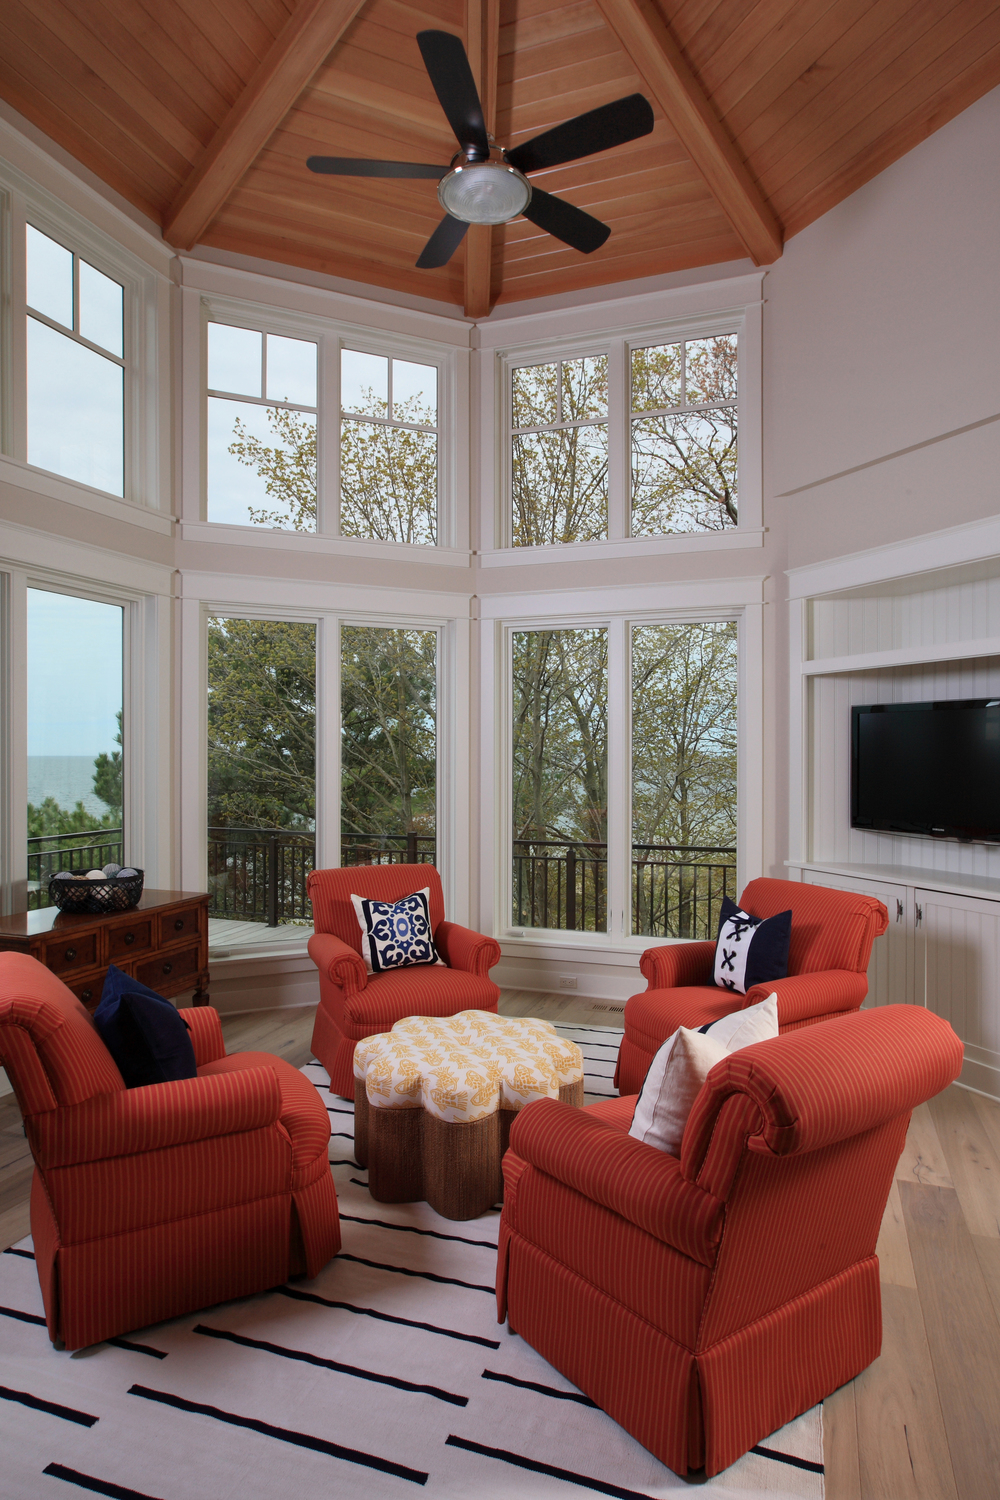 Sunroom_Design Home 1001.jpg